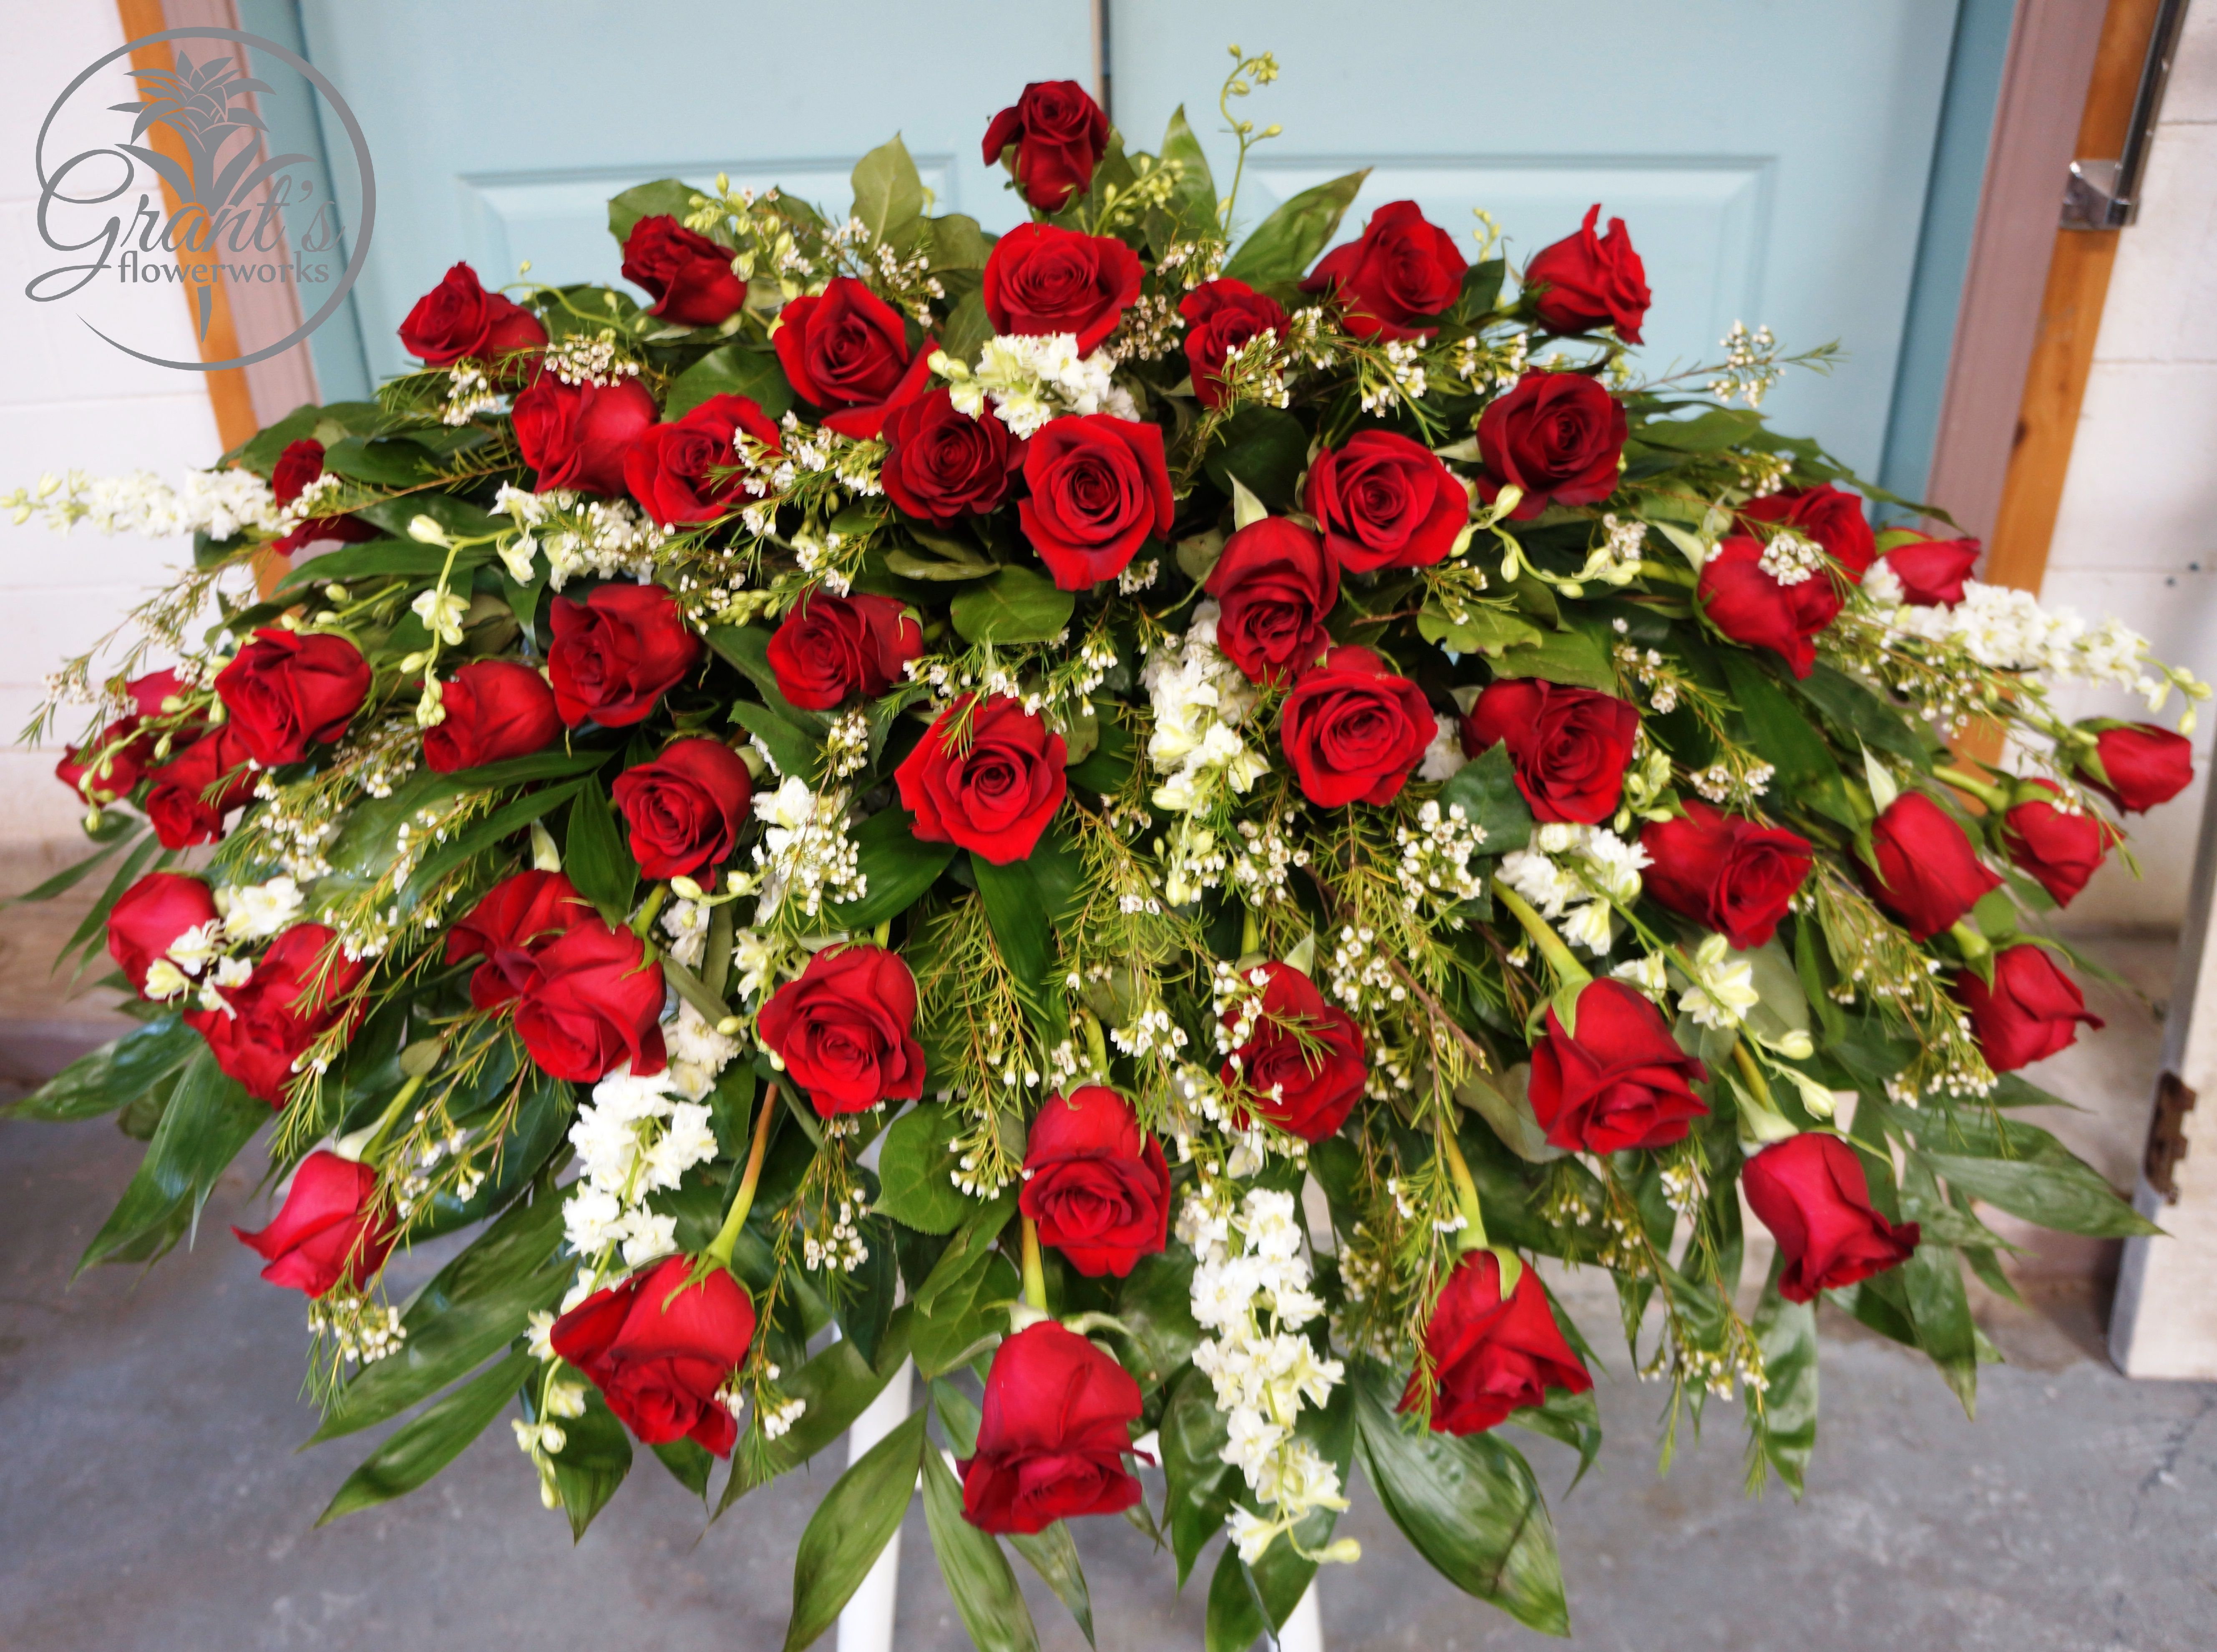 Casket spray by grants flowerworks home going floral someone has order classic red white casket spray flower arrangement from grants flowerworks your local port allen la florist send classic red white casket spray izmirmasajfo Choice Image